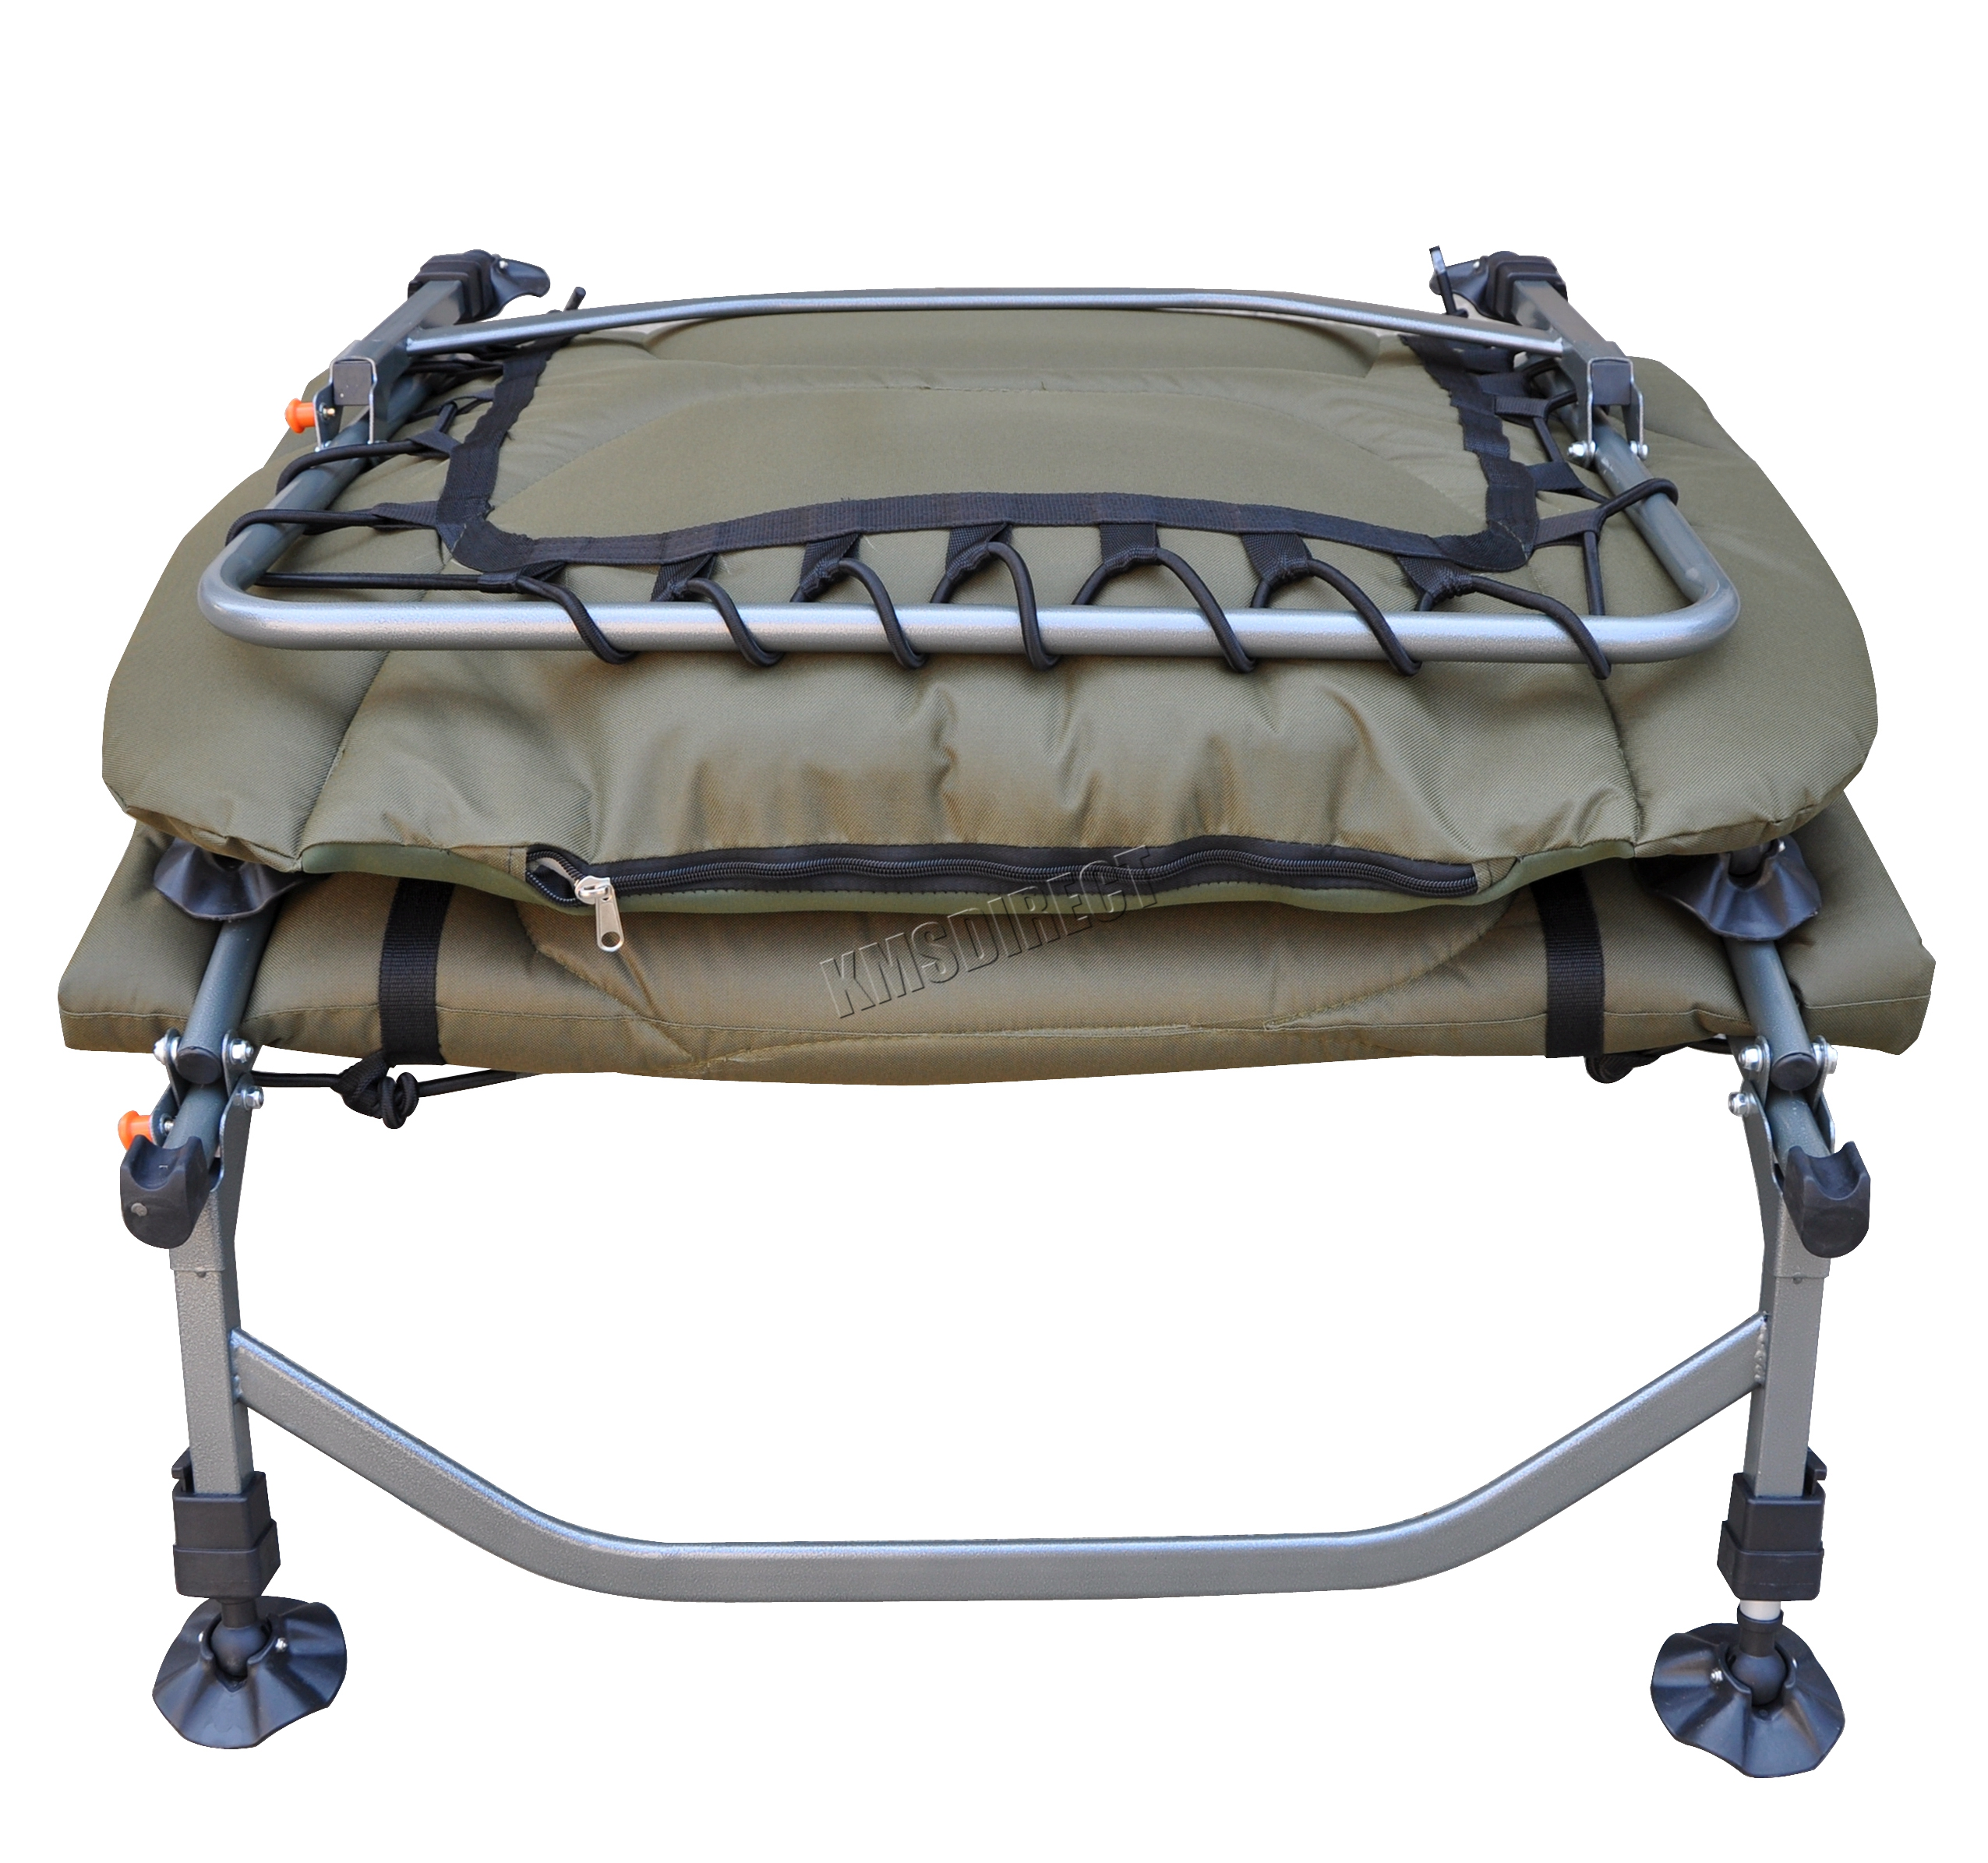 Portable Carp Fishing Bed Chair Bedchair Camping 8 Adjustable Legs